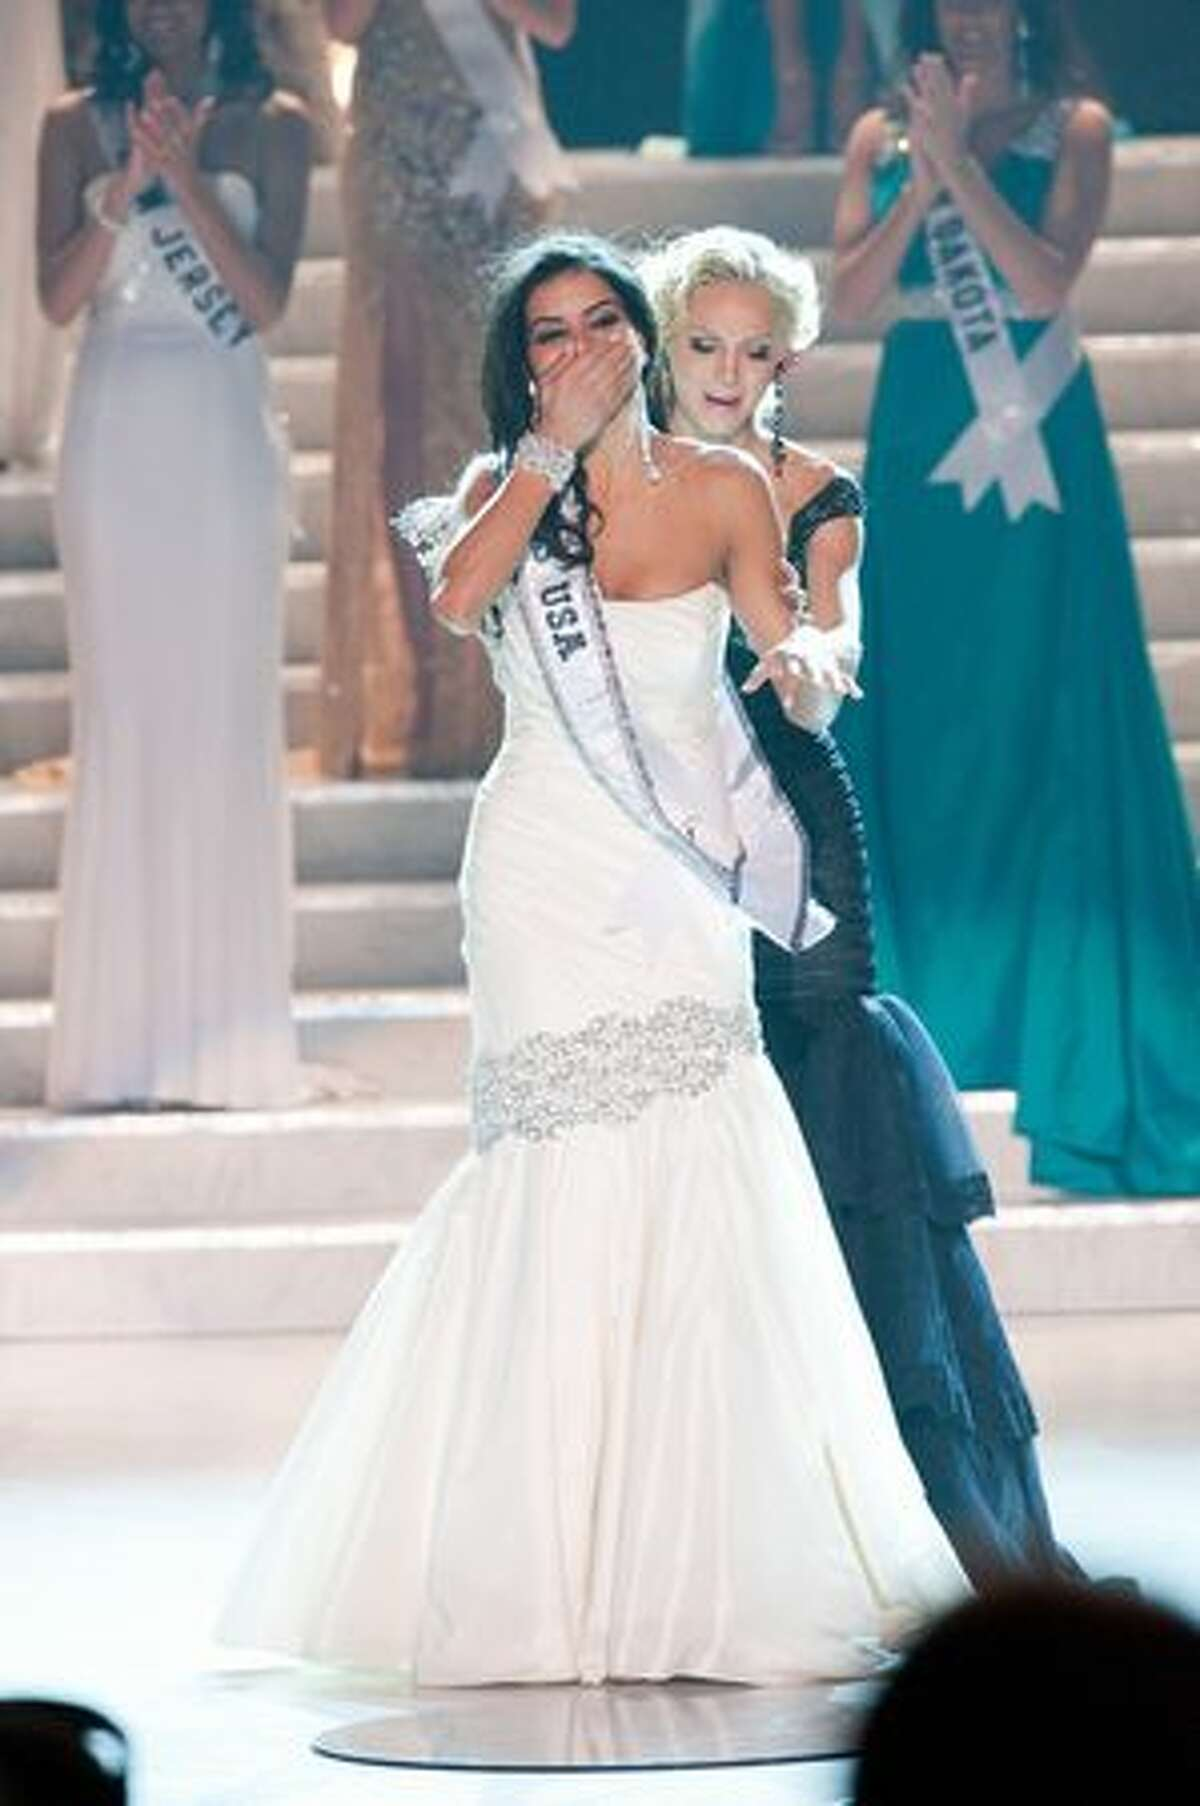 Rima Fakih, 24, of Dearborn, Mich., reacts after being named Miss USA 2010.